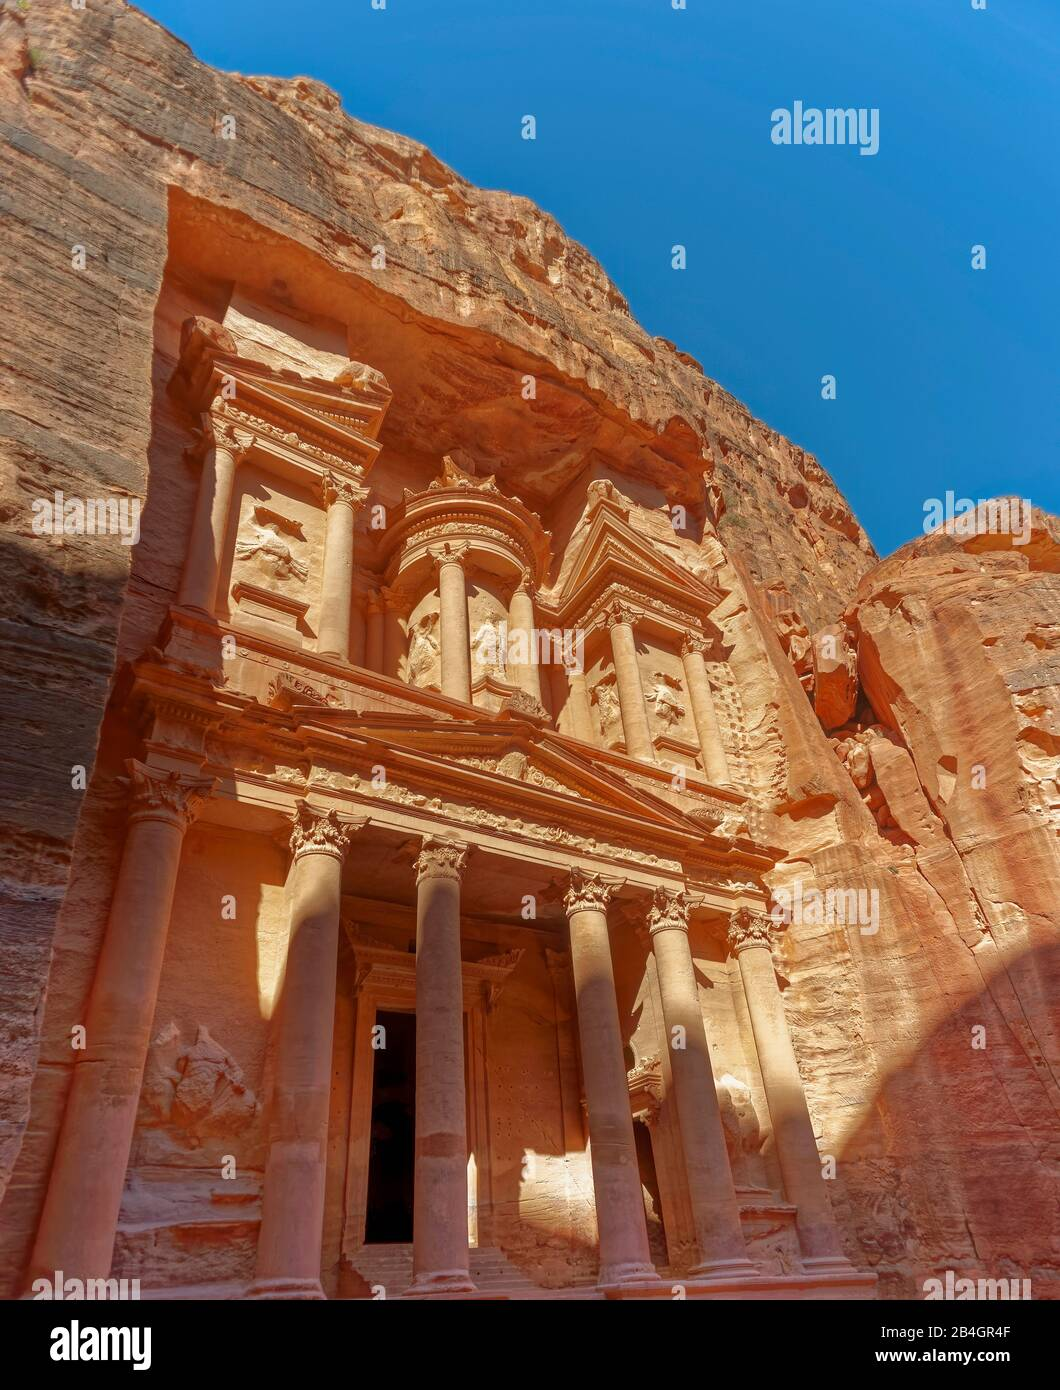 Jordan, Al-Khazneh, the treasure house in the rock city Petra Stock Photo